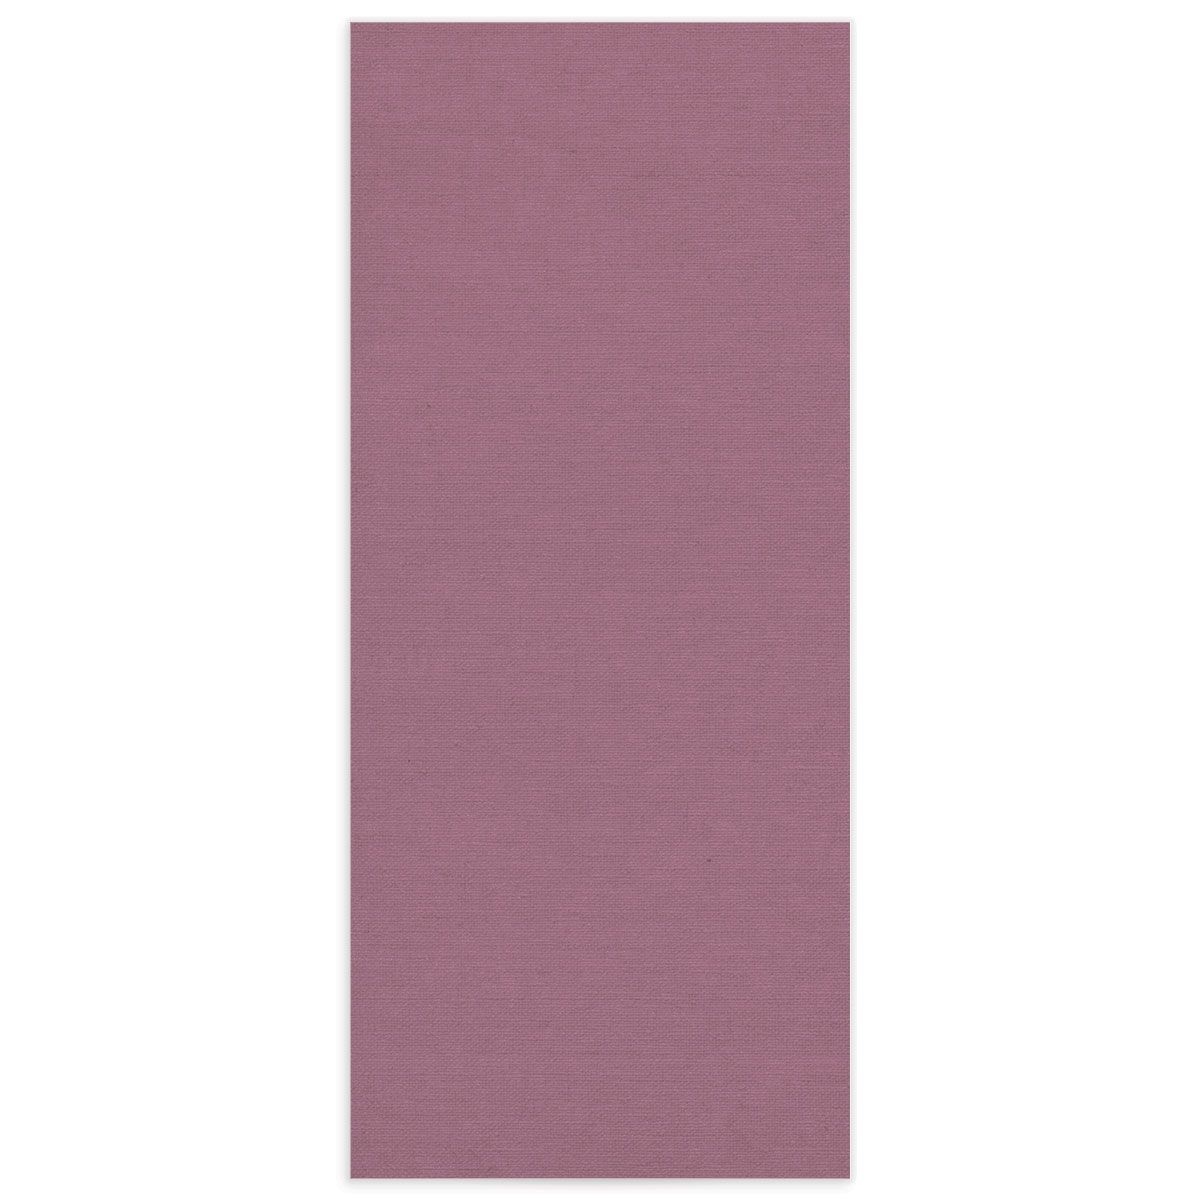 Beloved Floral Ceremony Menus in purple back